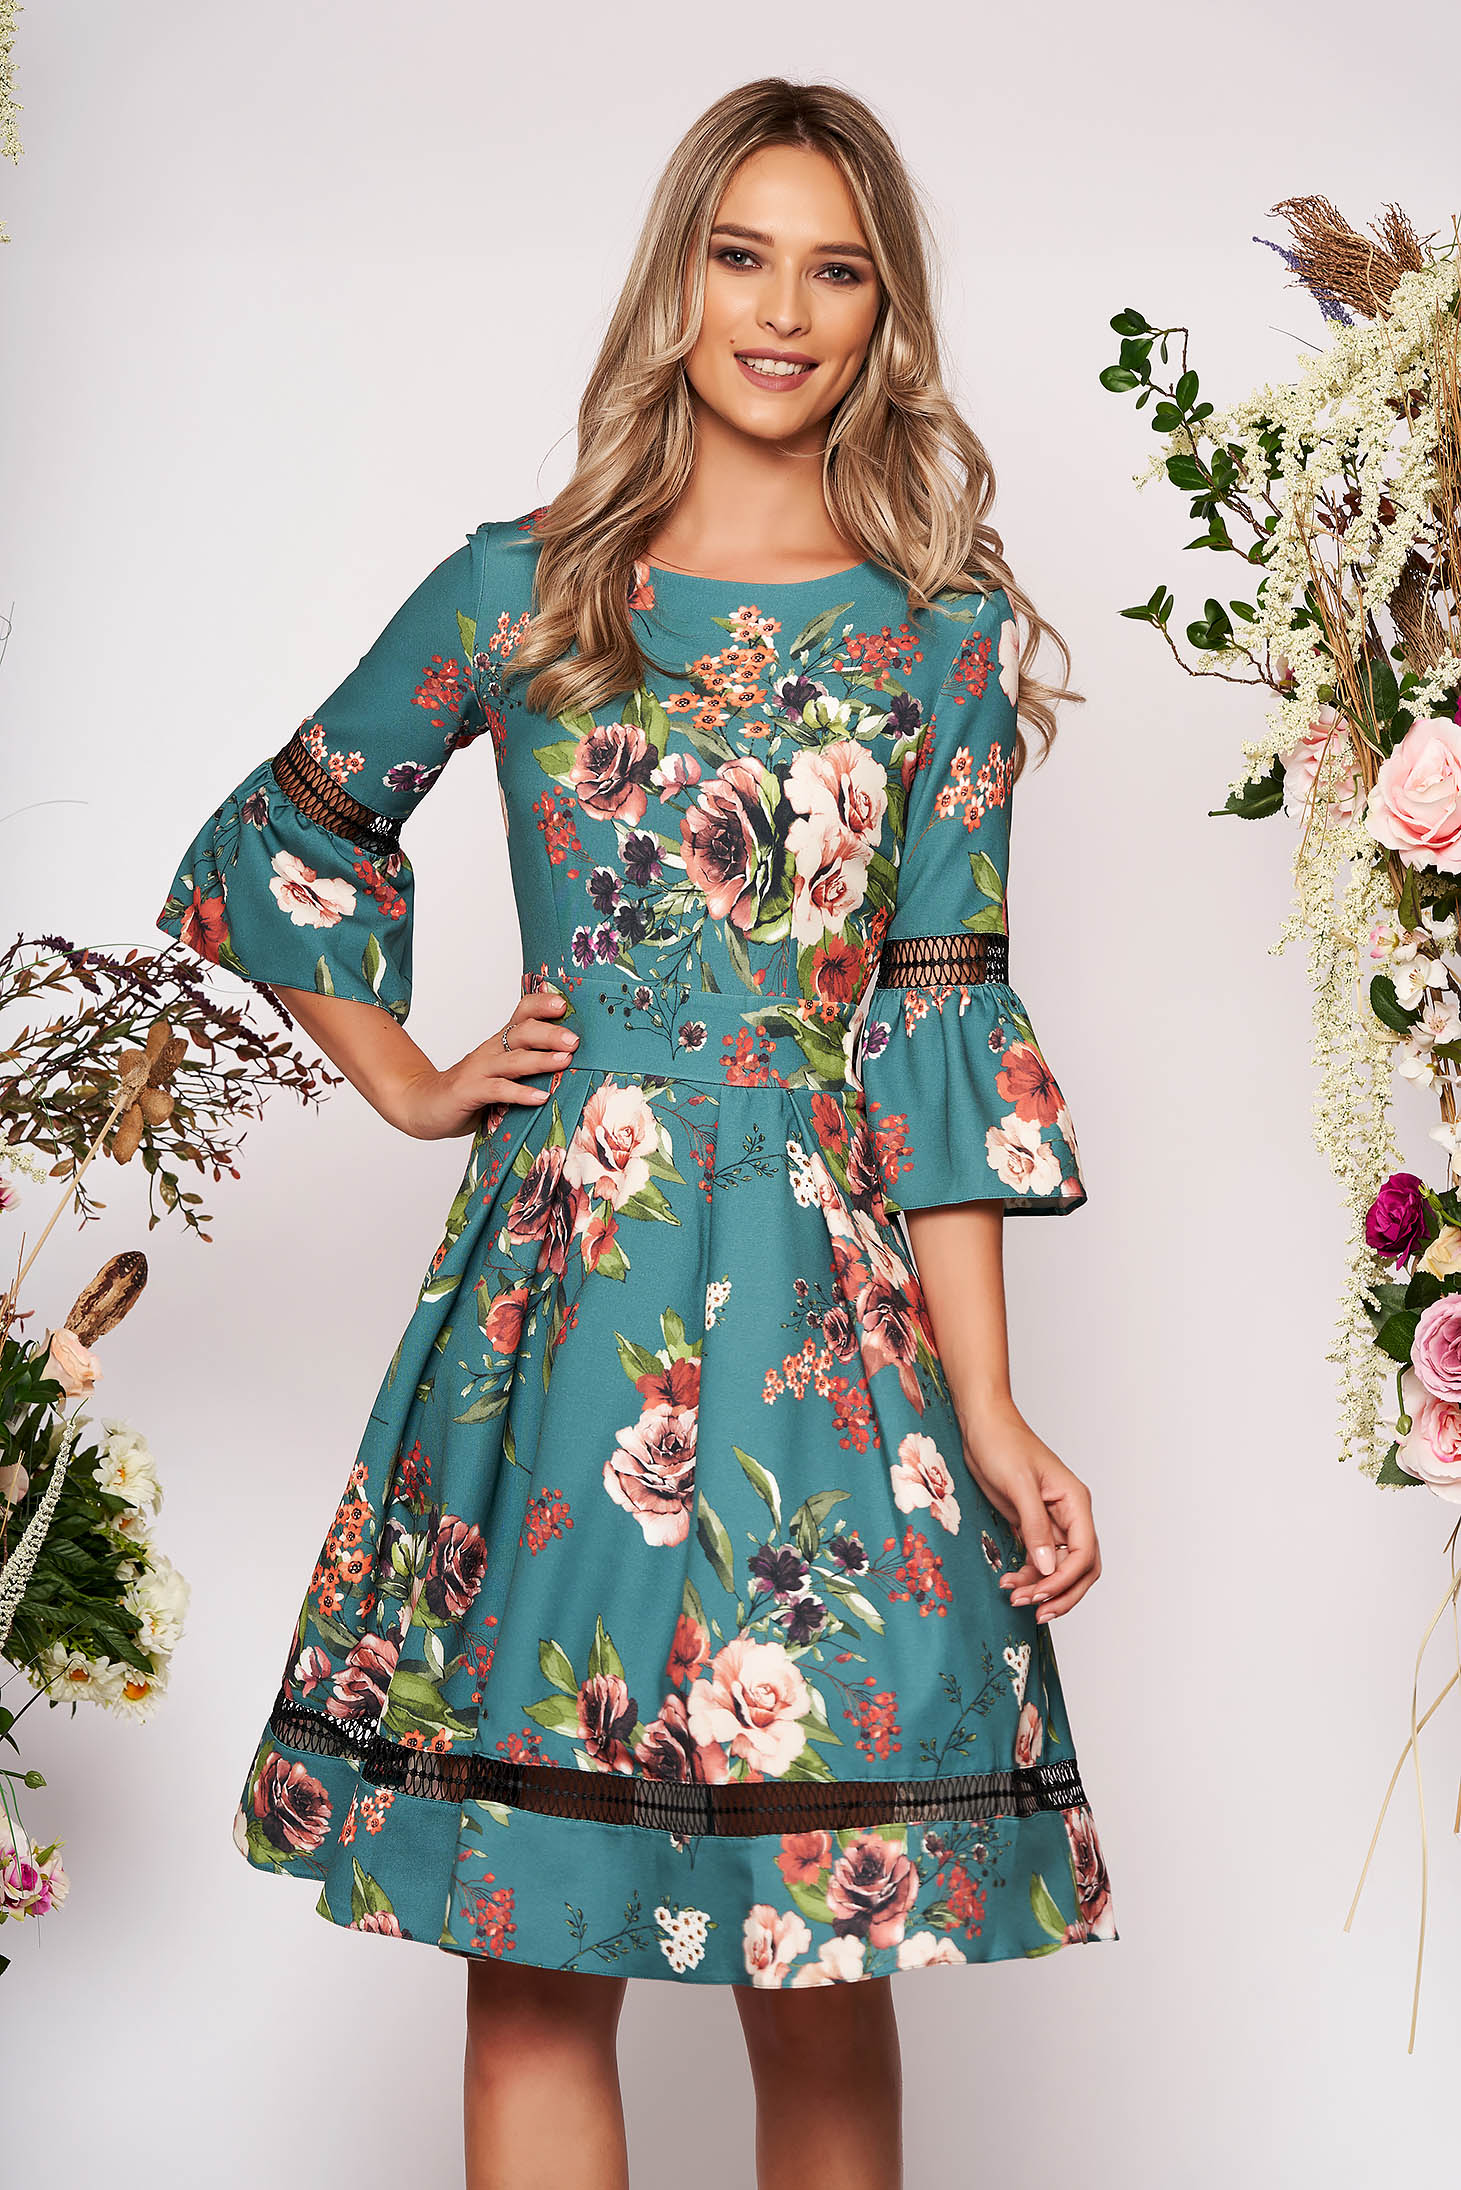 Green dress occasional cloche with floral print bell sleeves neckline